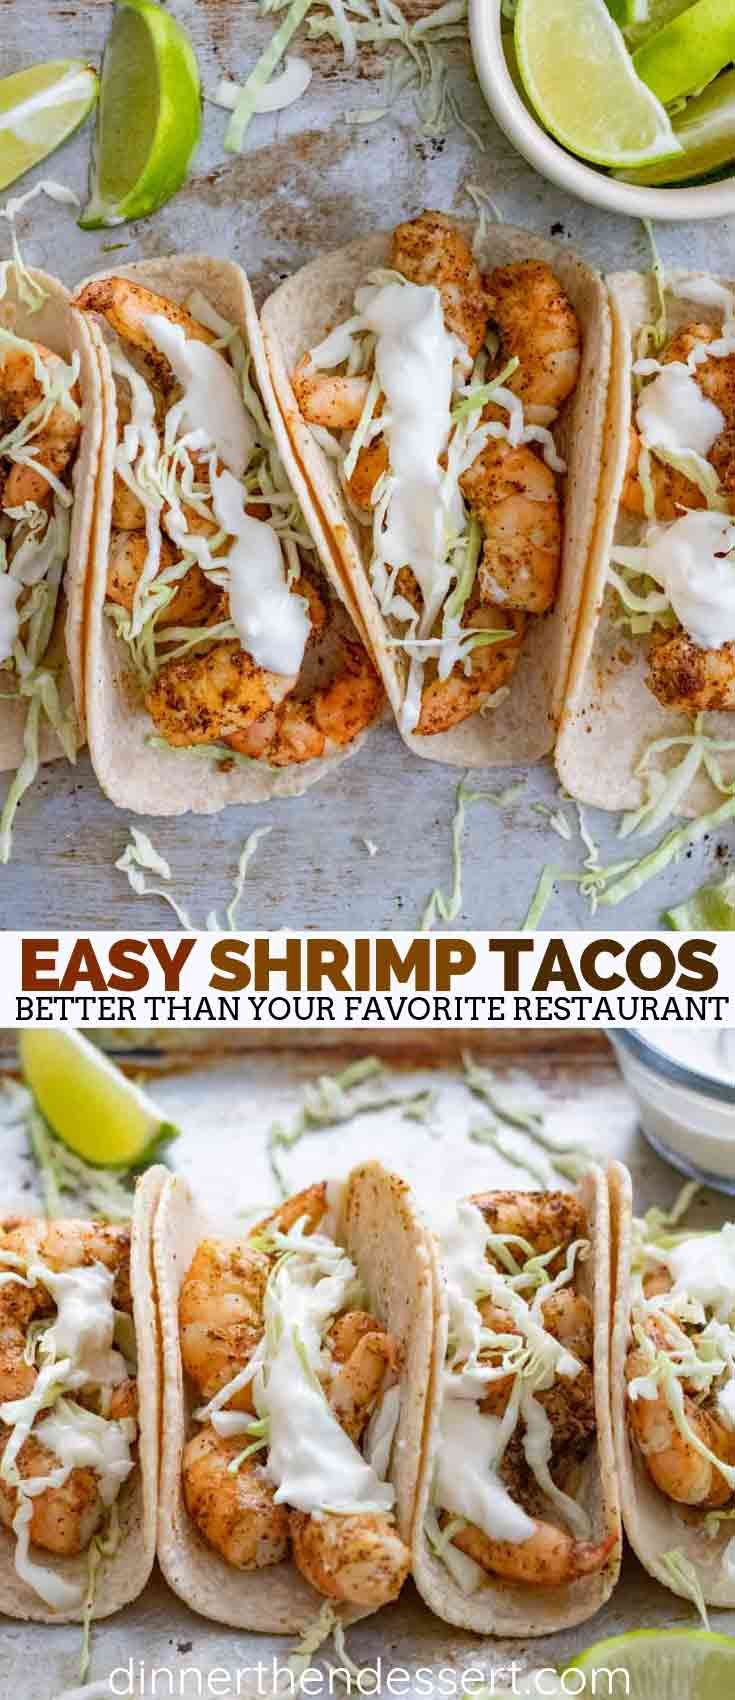 Shrimp tacos made with taco seasoning and topped with cabbage and sour cream are a quick and easy dinner that is perfect for healthy weeknight meals! #shrimp #shrimptacos #tacos #mexican #mexicanfood #easyrecipes #dinner #quickrecipes #weeknightmeals #dinnerthendessert #healthyweeknightmeals